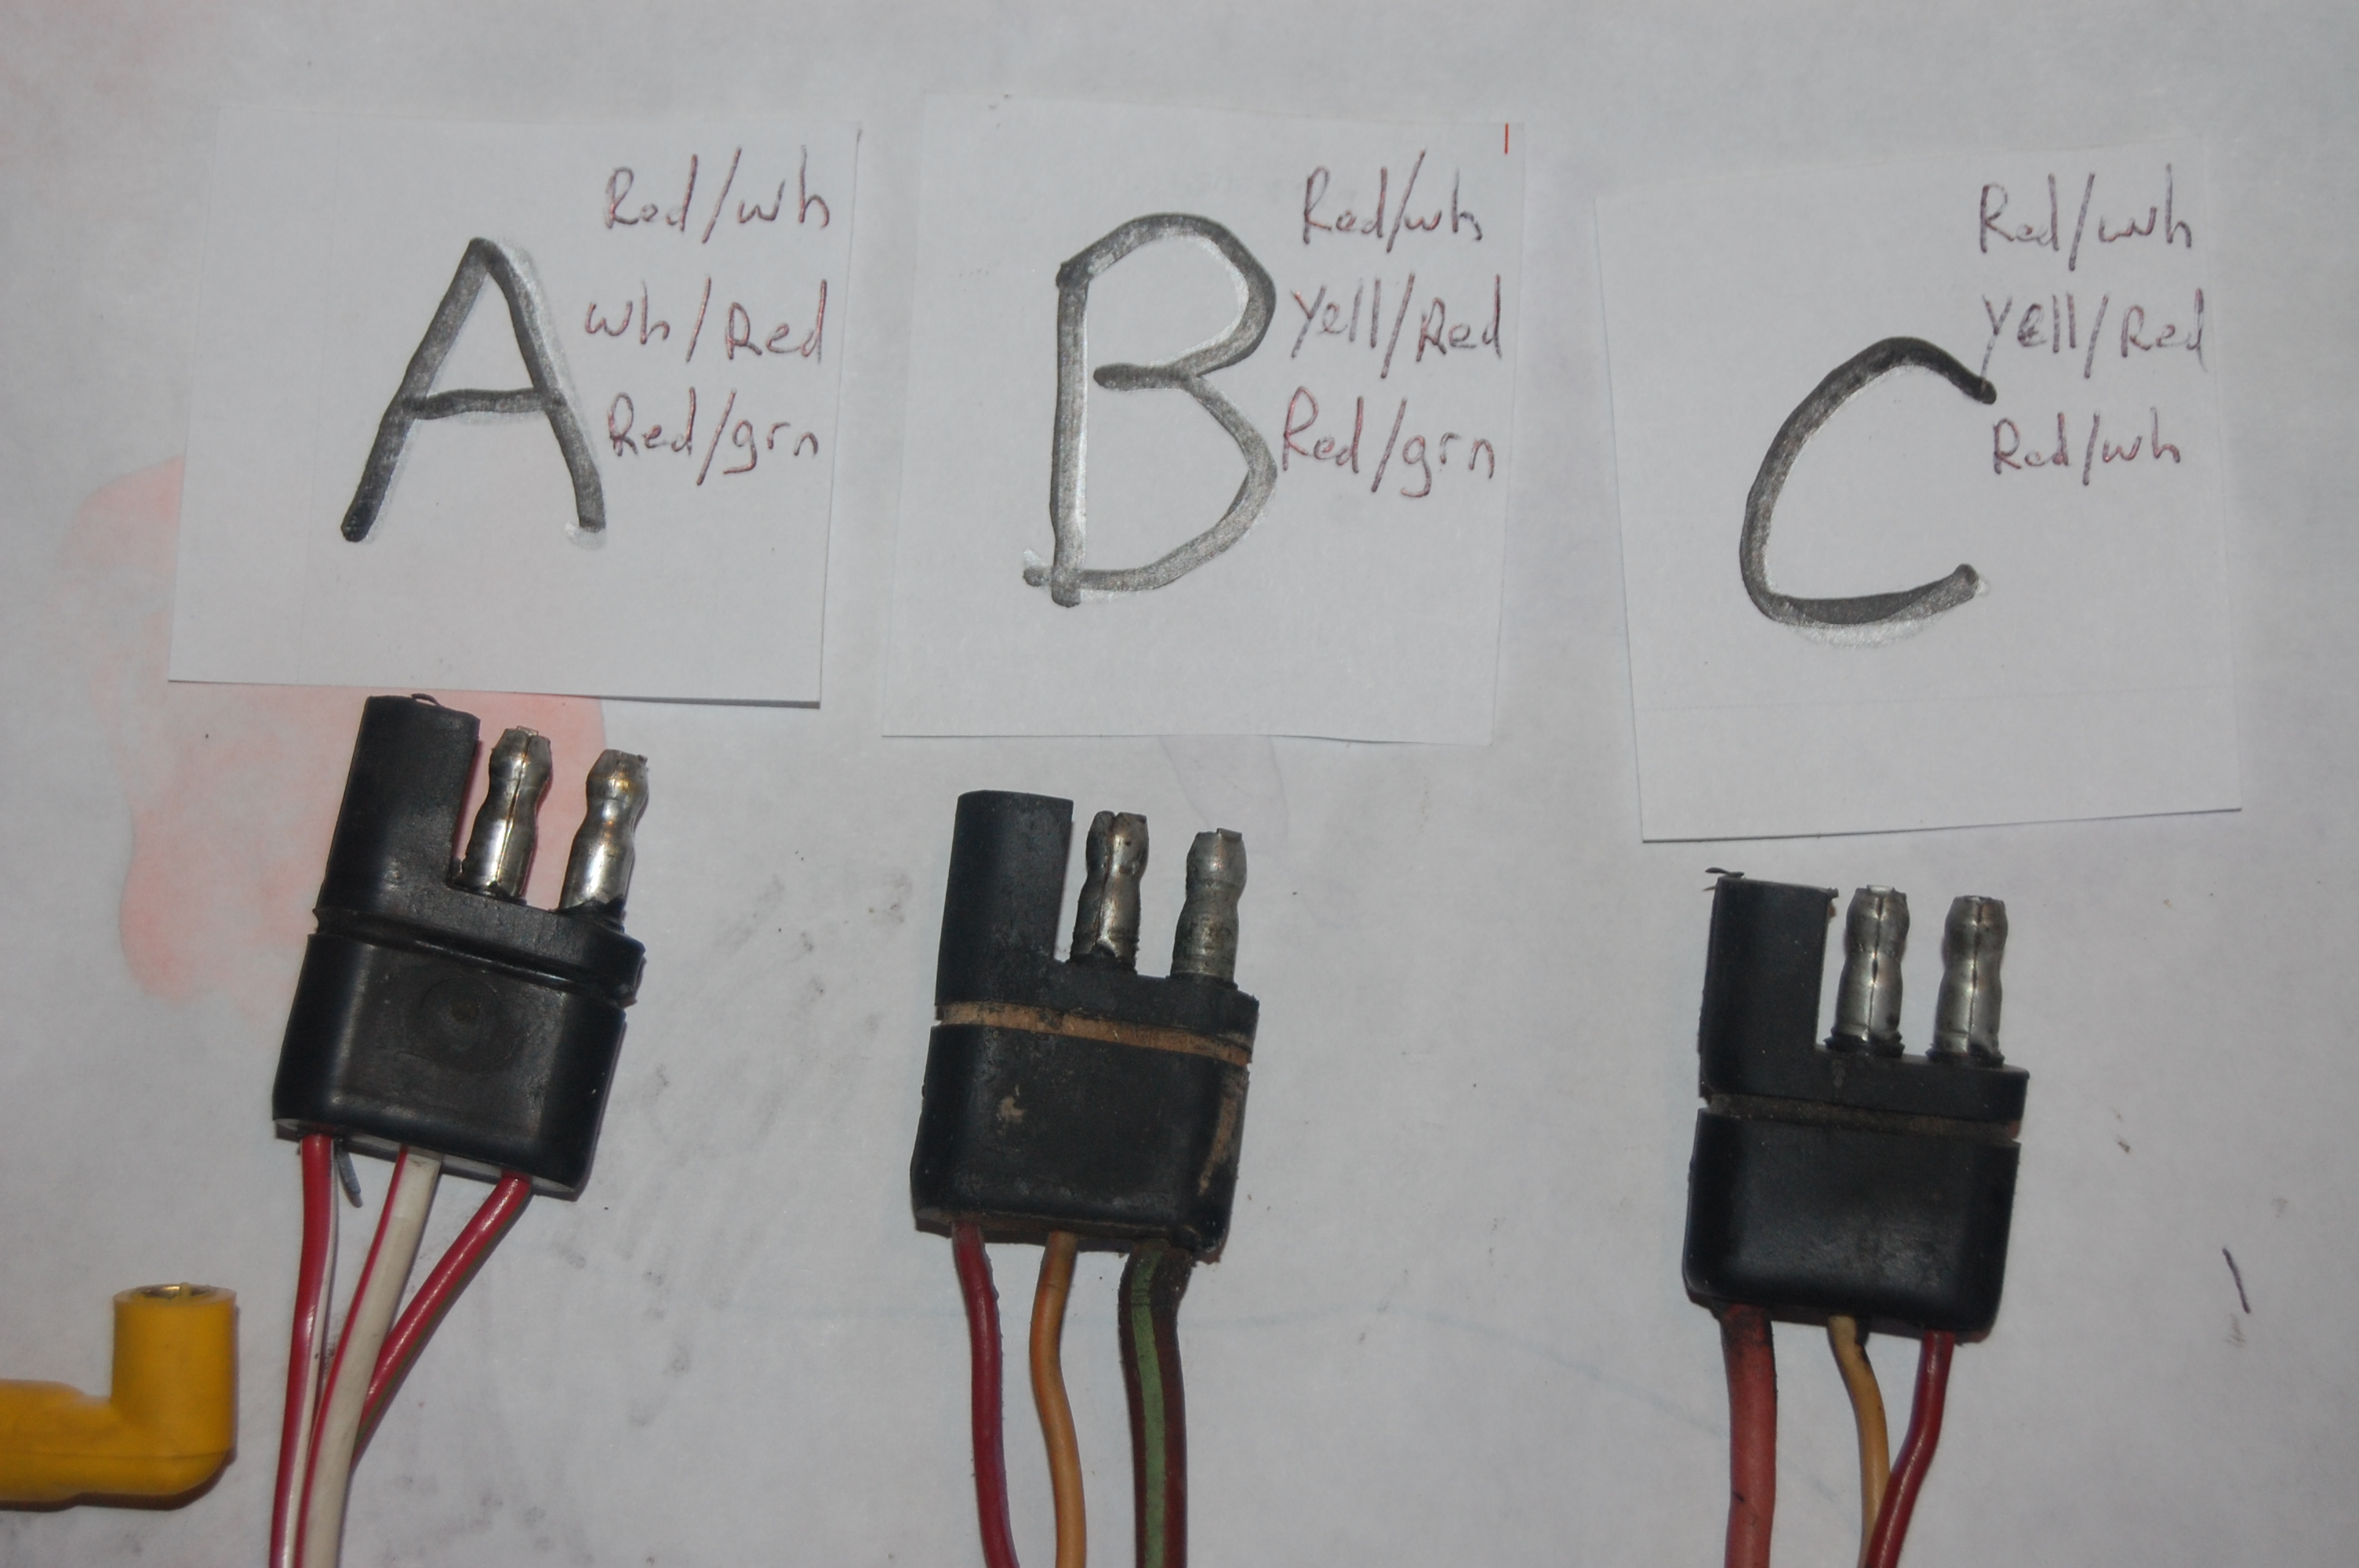 They all do. The ends that plug into the harness are identical. one female  and two male connectors.